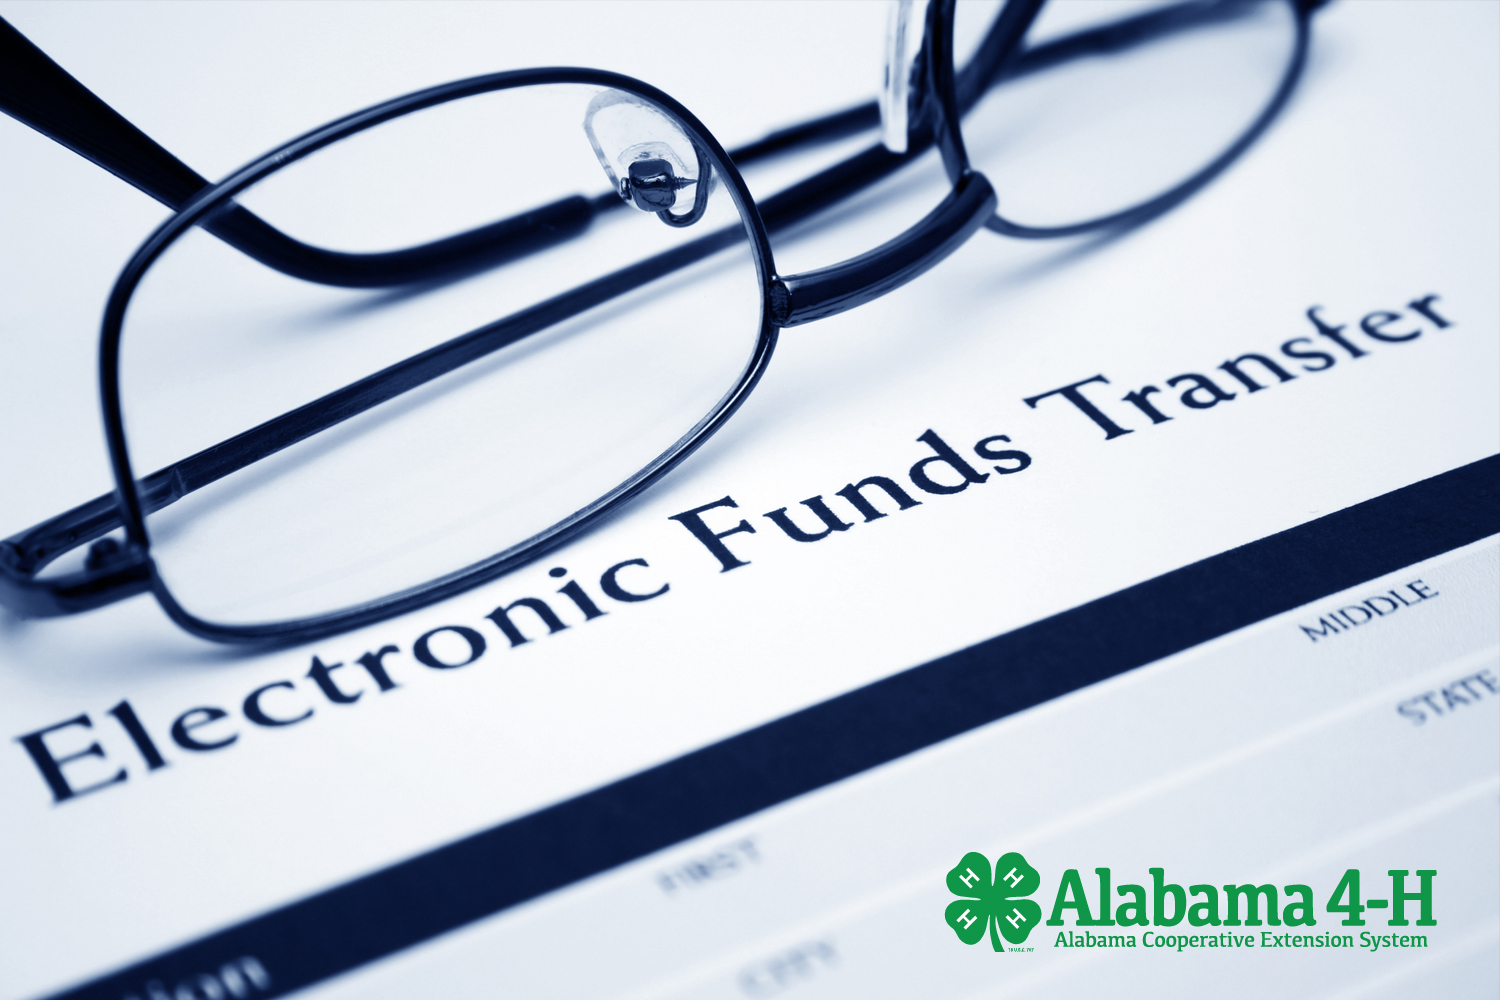 Alabama 4-H Foundation electronic funds transfer